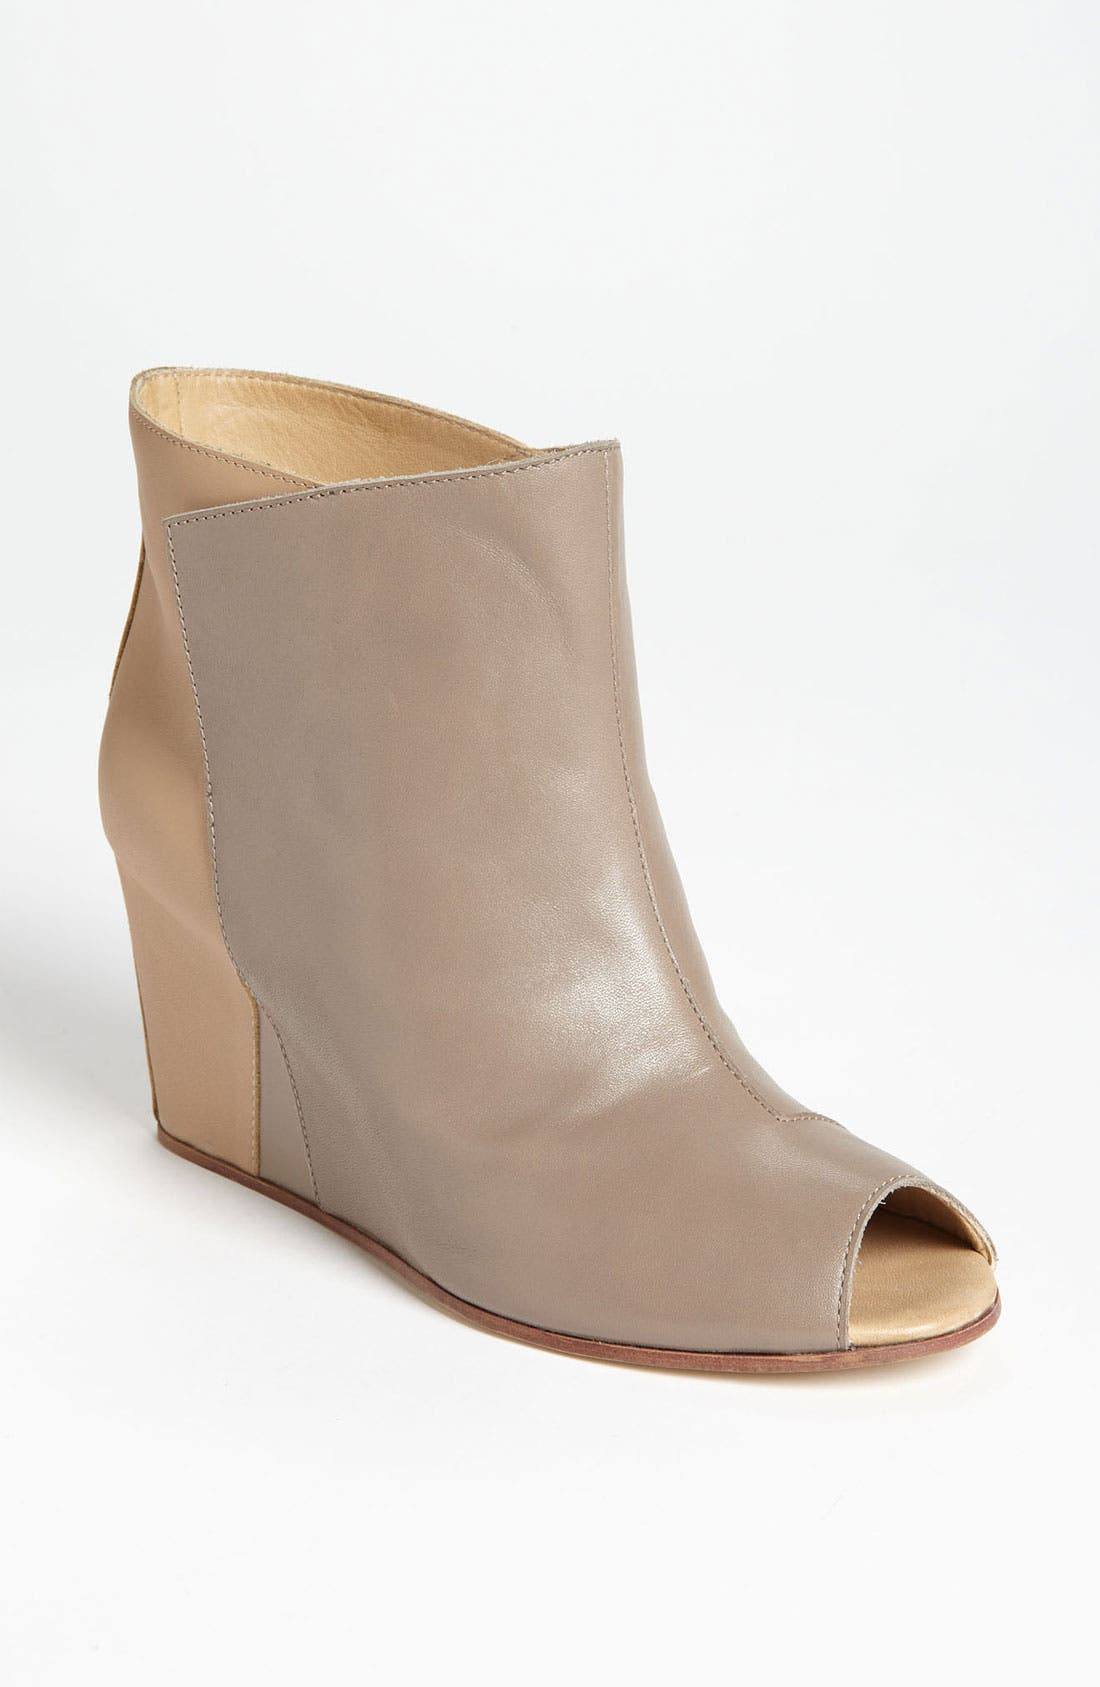 Alternate Image 1 Selected - MM6 Maison Margiela Two Tone Bootie